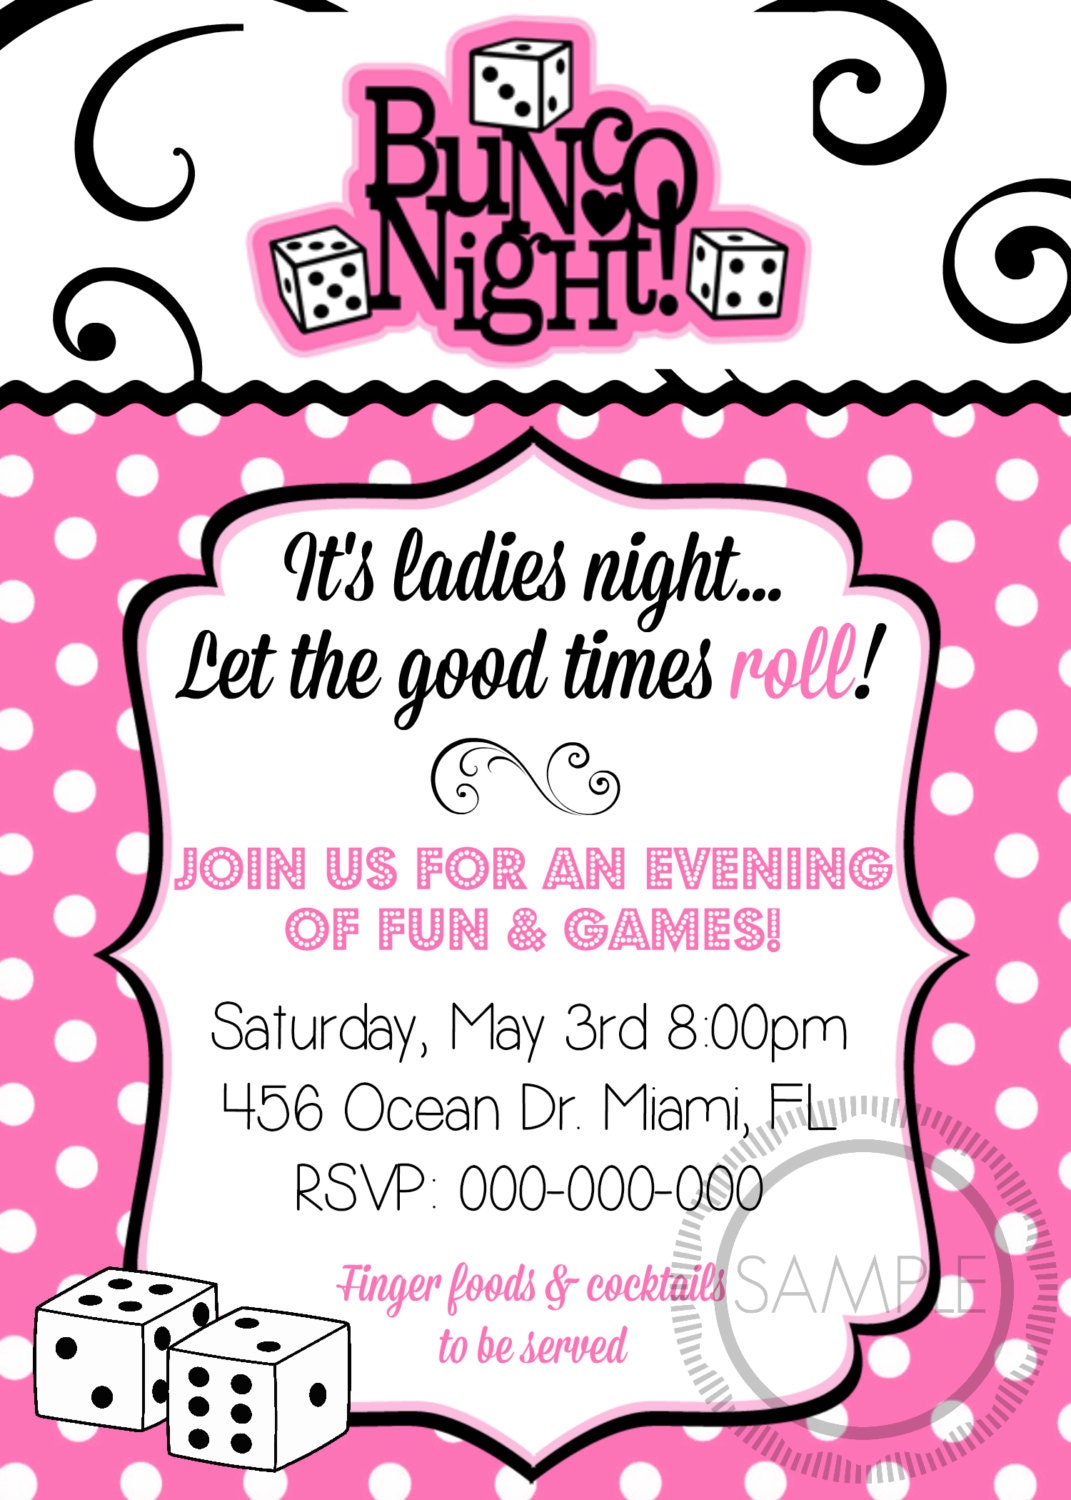 Bunco Night Ladies Night Party Invitation E10261624441779990M